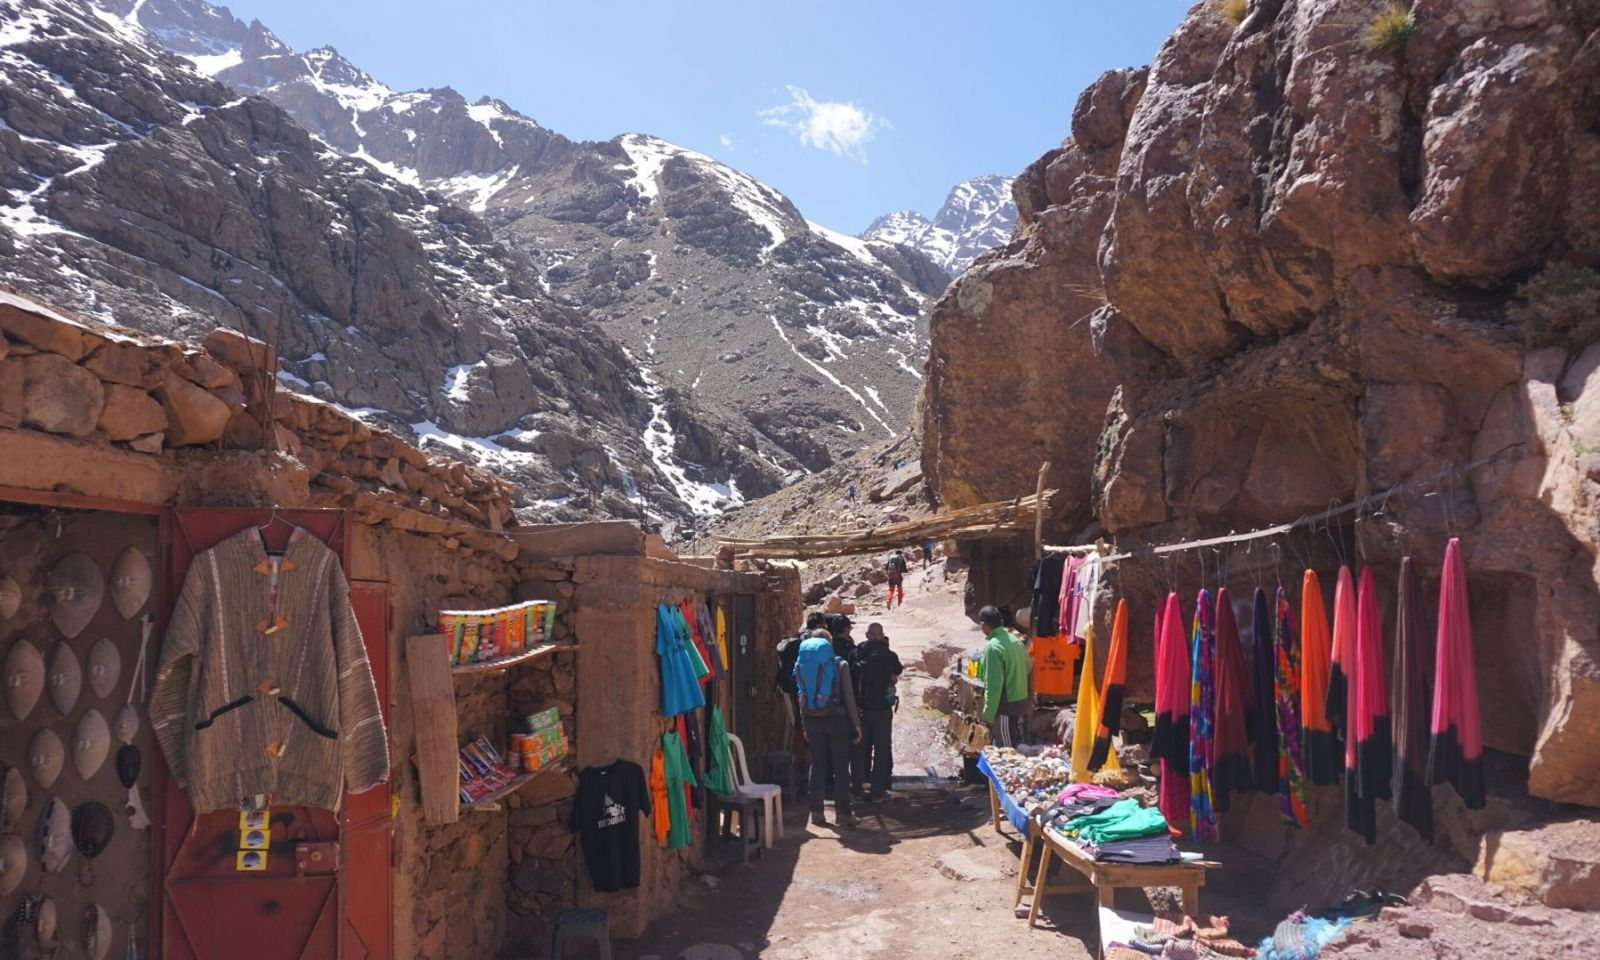 Group walking in the Atlas mountains beside shop.